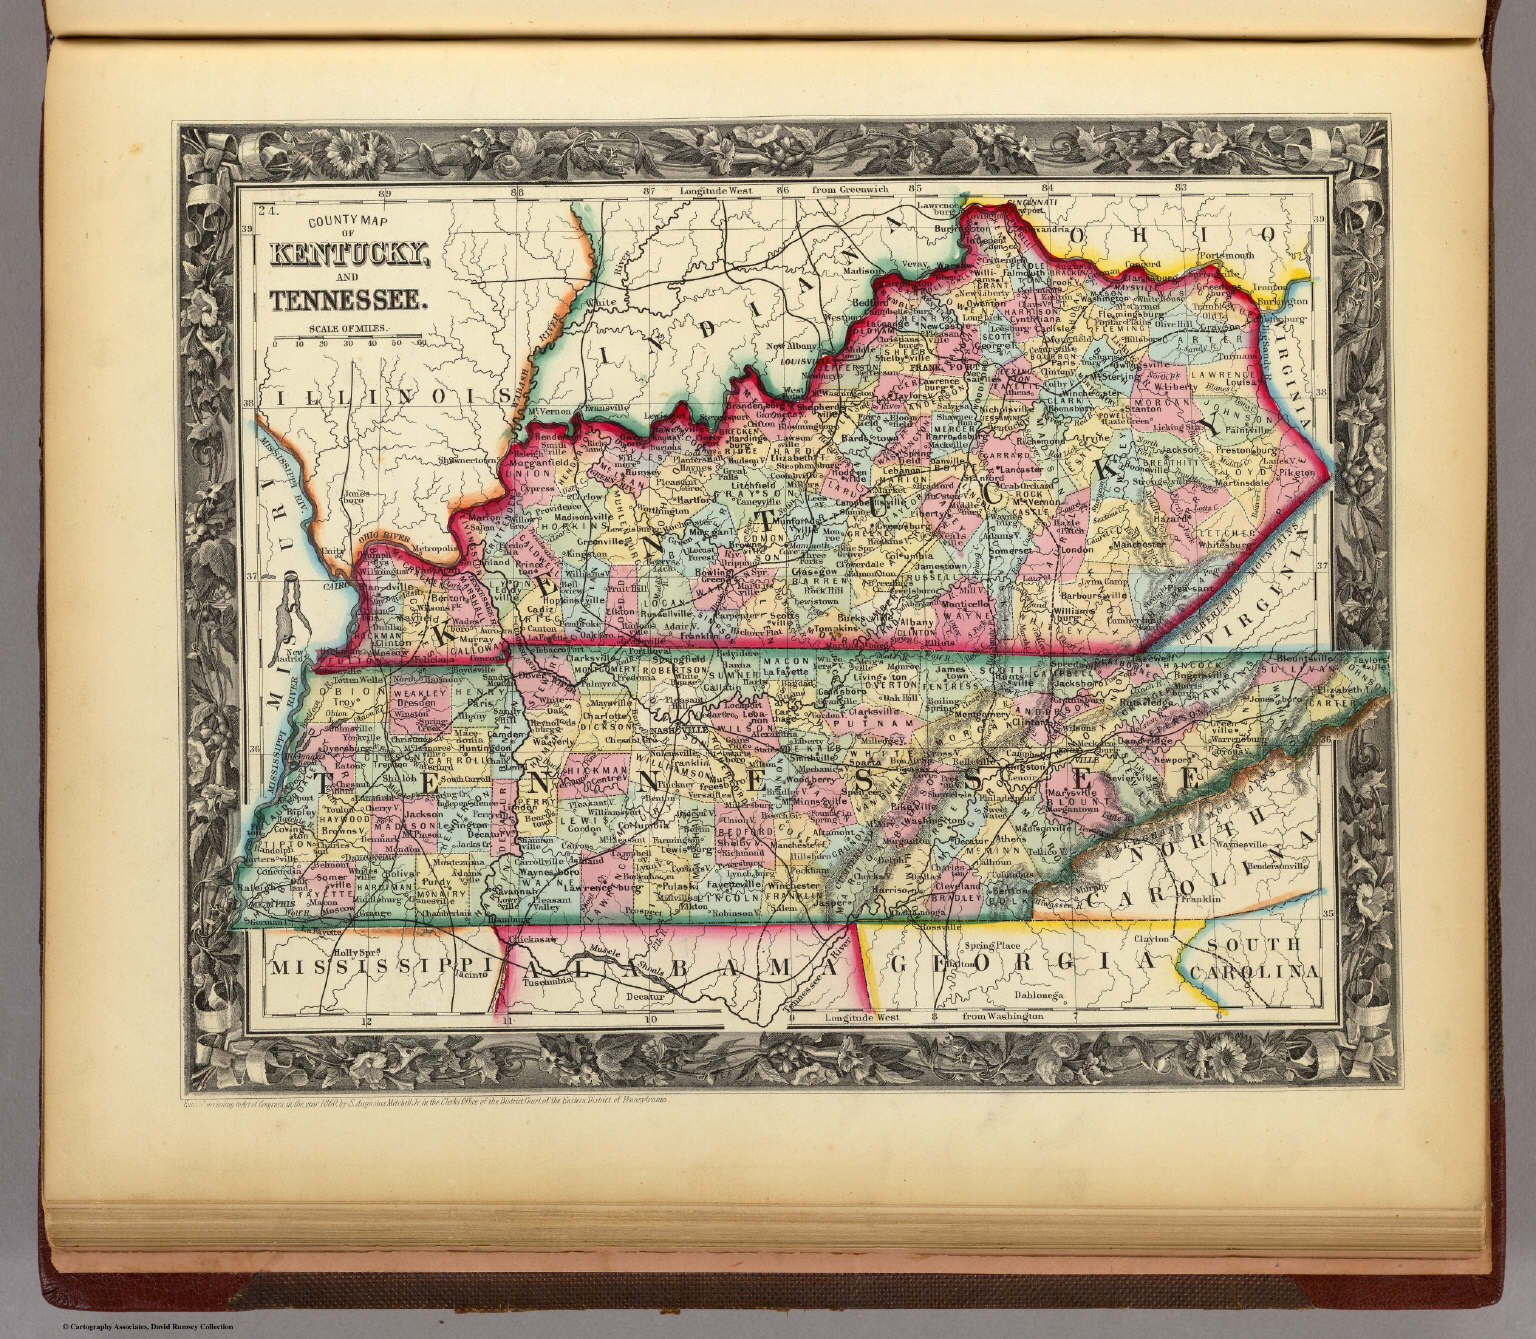 County Map Of Kentucky, And Tennessee. - David Rumsey Historical Map ...